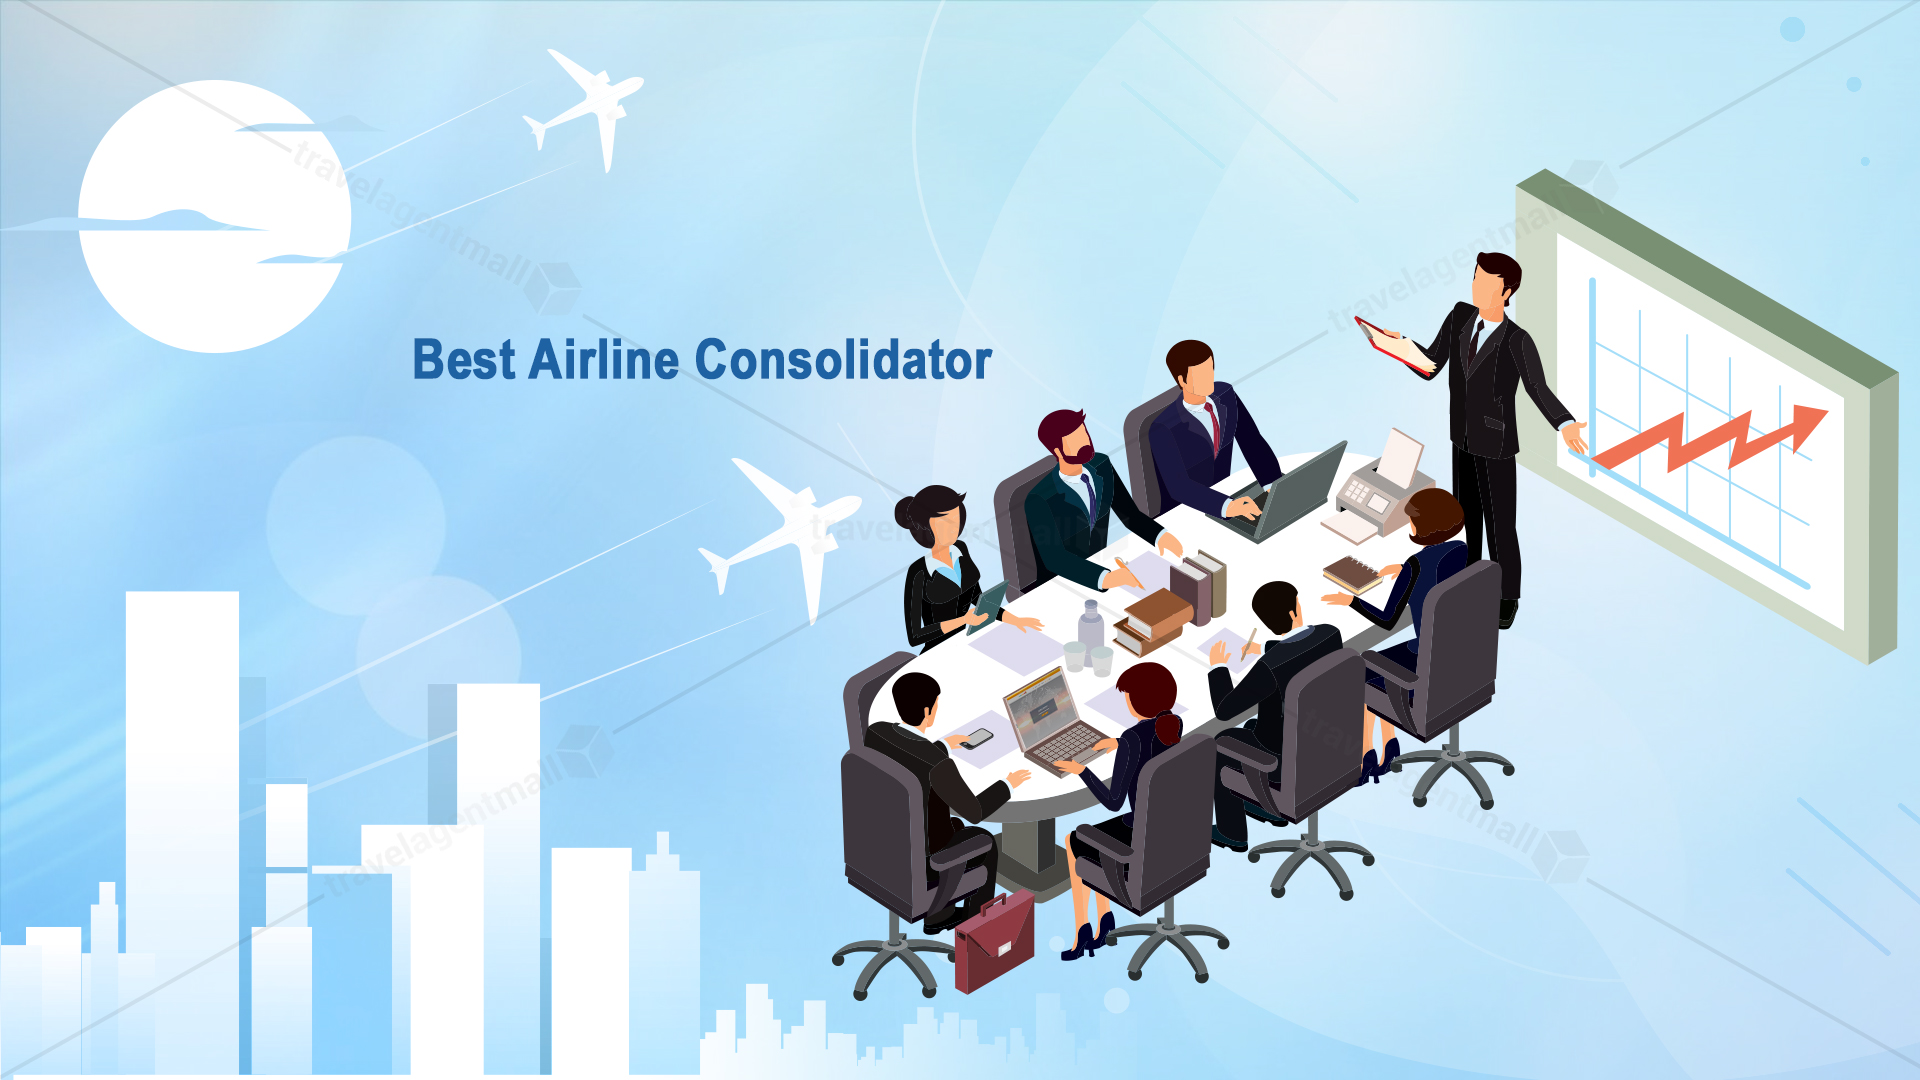 Why do travel agents prefer TravelAgentMall over other airline consolidators?